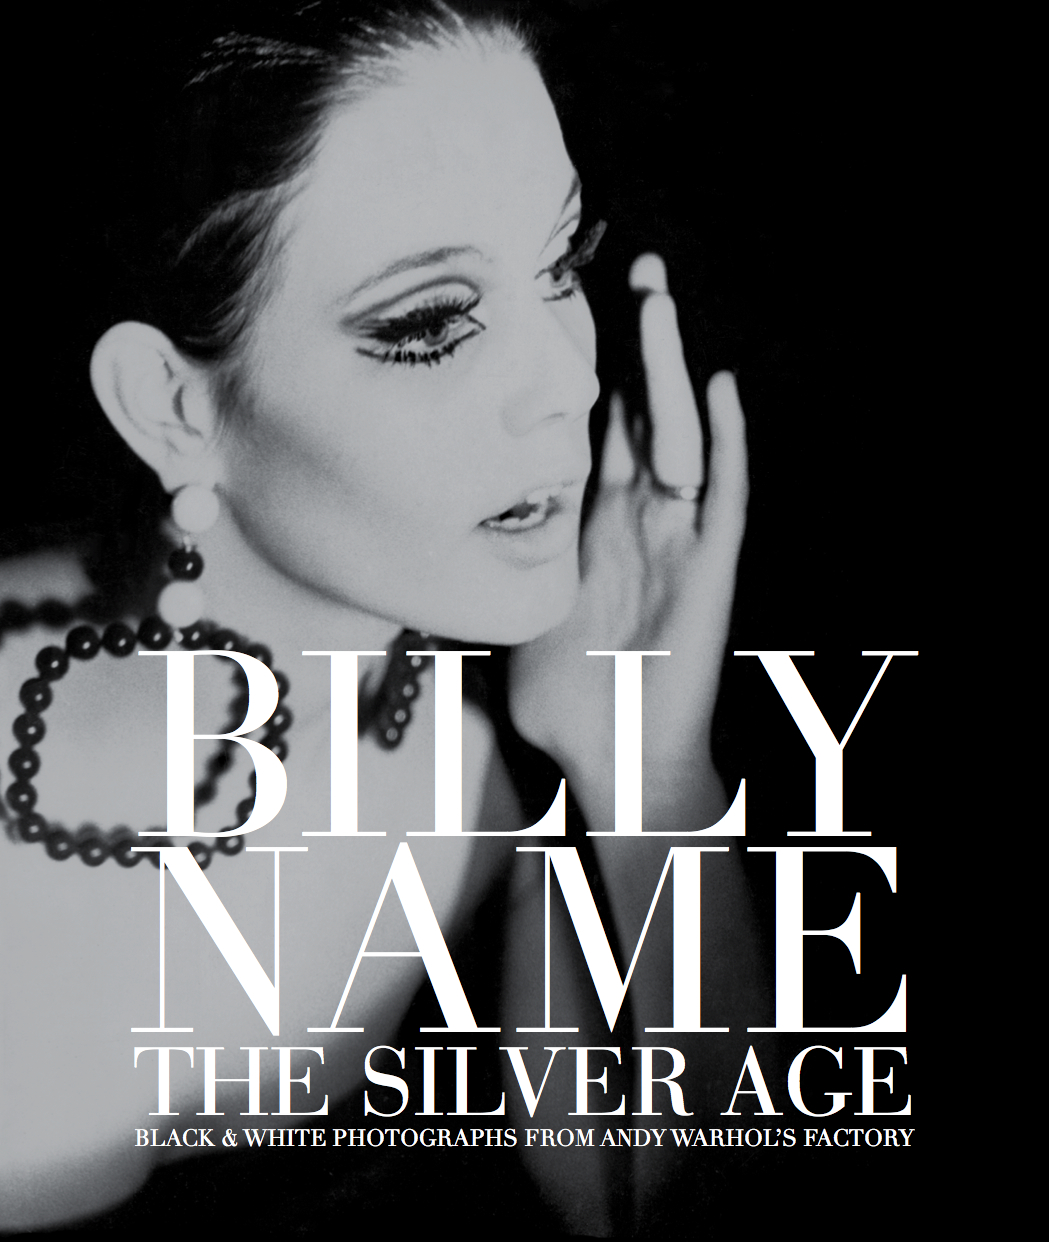 Cubierta de la biografía de Billy Name © Billy Name - From 'Billy Name: the Silver Age', published by Reel Art Press